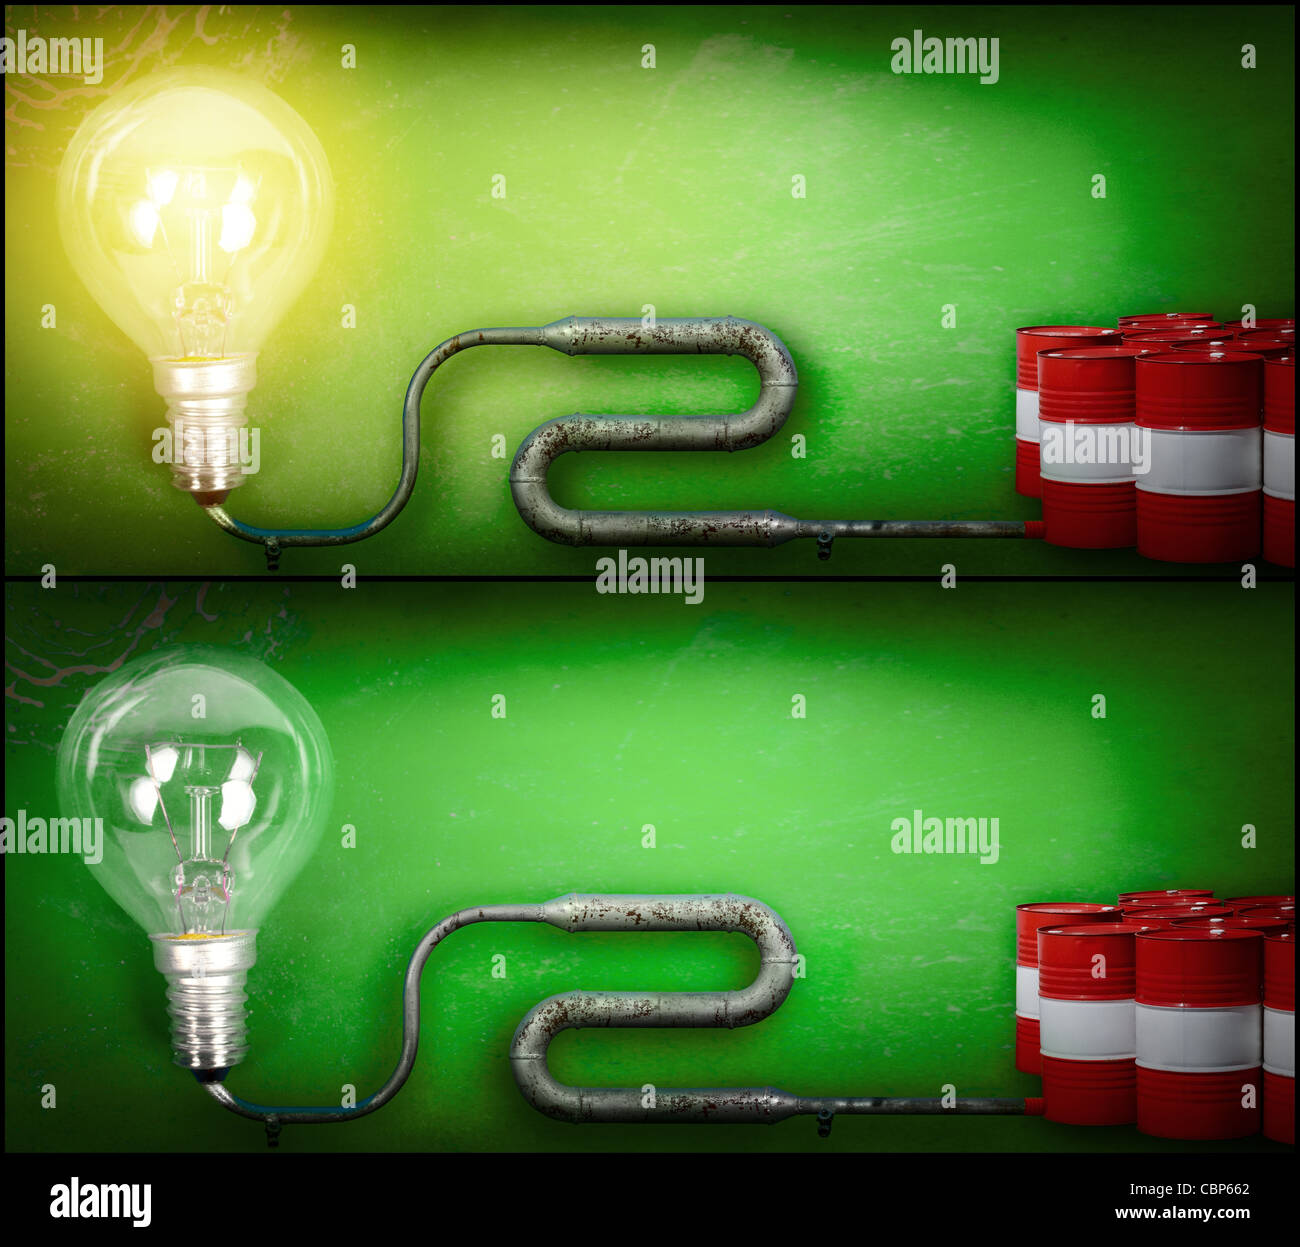 Off and on electricity lamp connected by a pipe with gasoline off and on electricity lamp connected by a pipe with gasoline barrels economy concept of the electricity cost biocorpaavc Choice Image